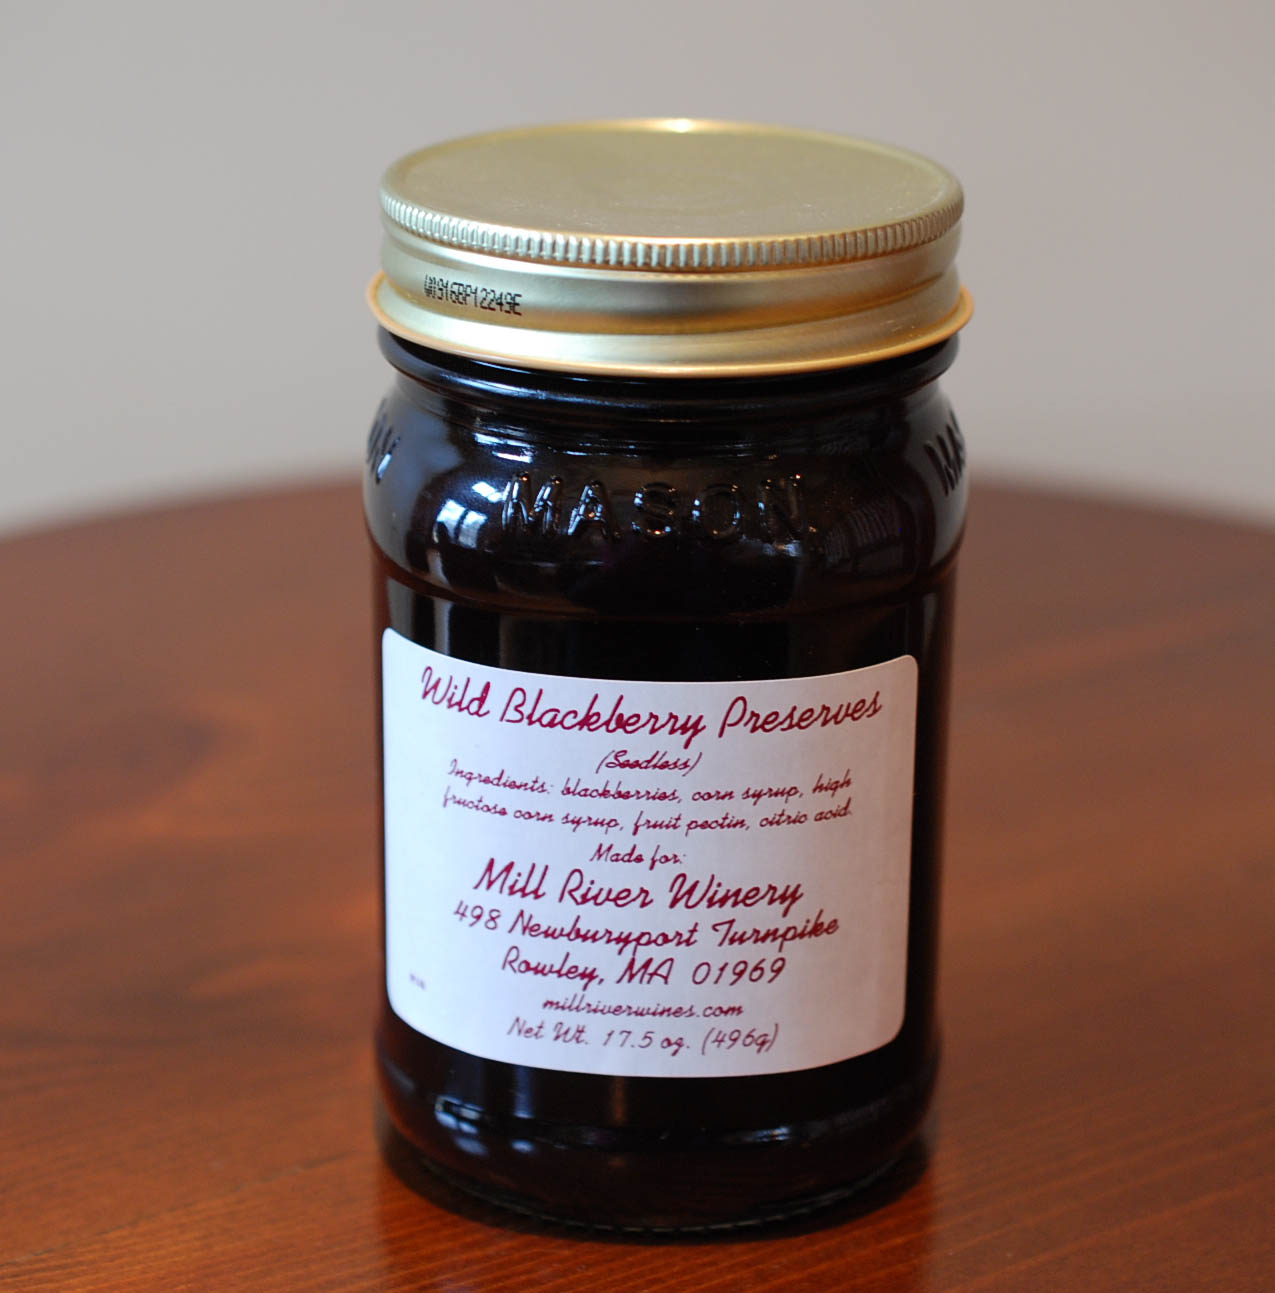 Wild Blackberry Preserves